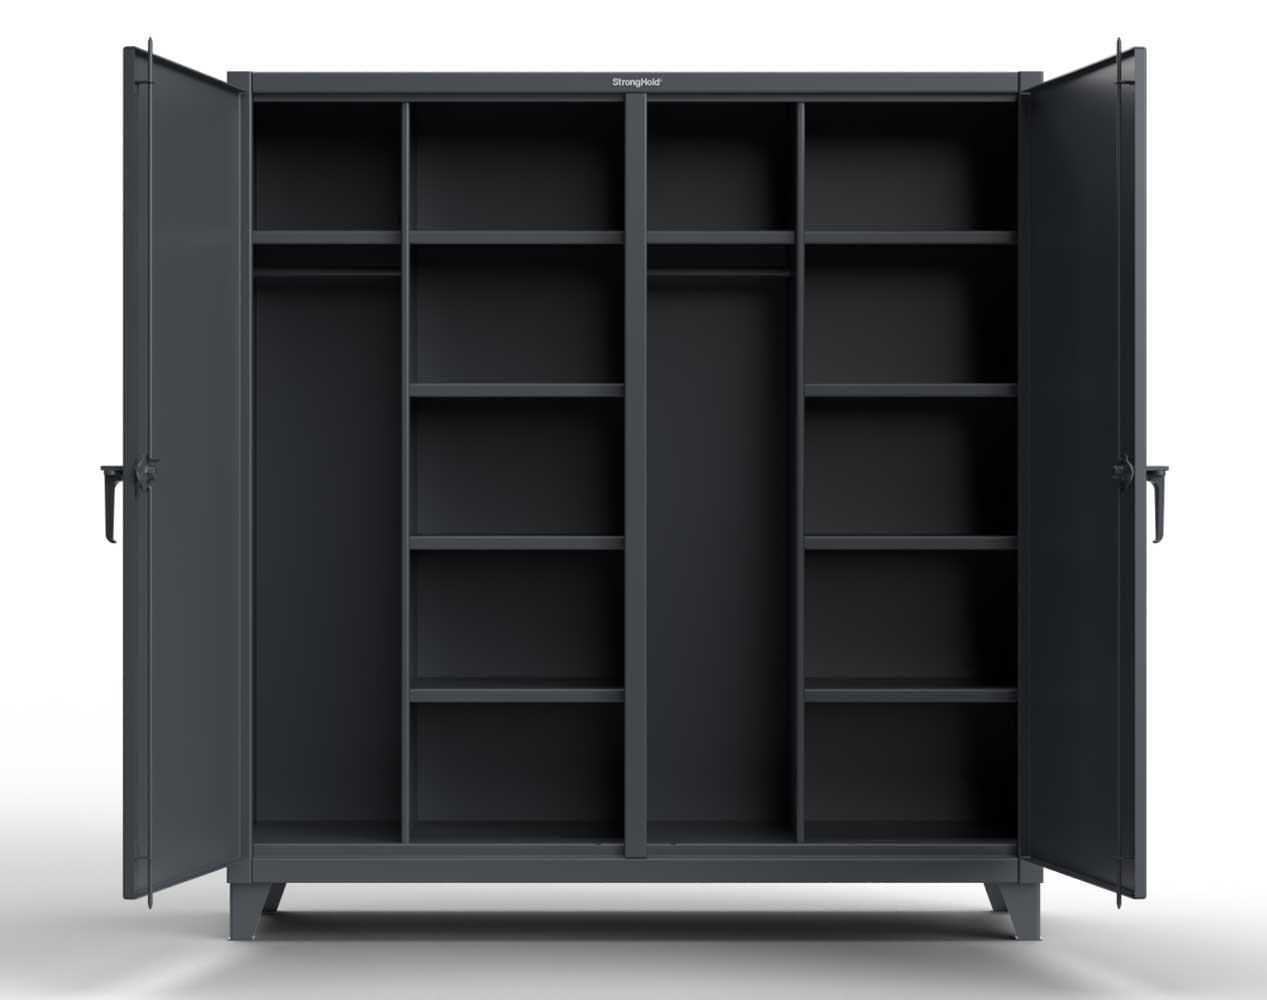 Extreme Duty 12 GA Double Shift Uniform Cabinet with 10 Shelves – 72 In. W x 24 In. D x 78 In. H